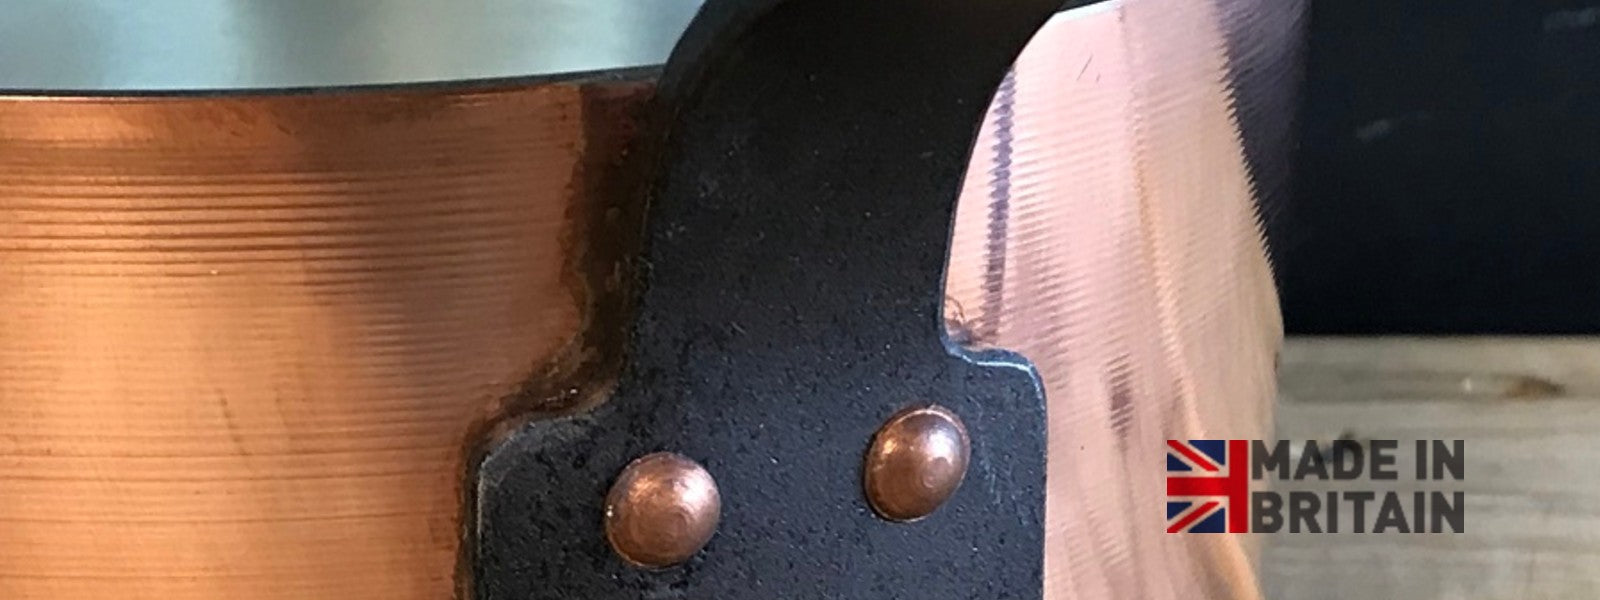 Copper Pots, Copper Pans, Copper Pots and Pans, handcrafted in the UK